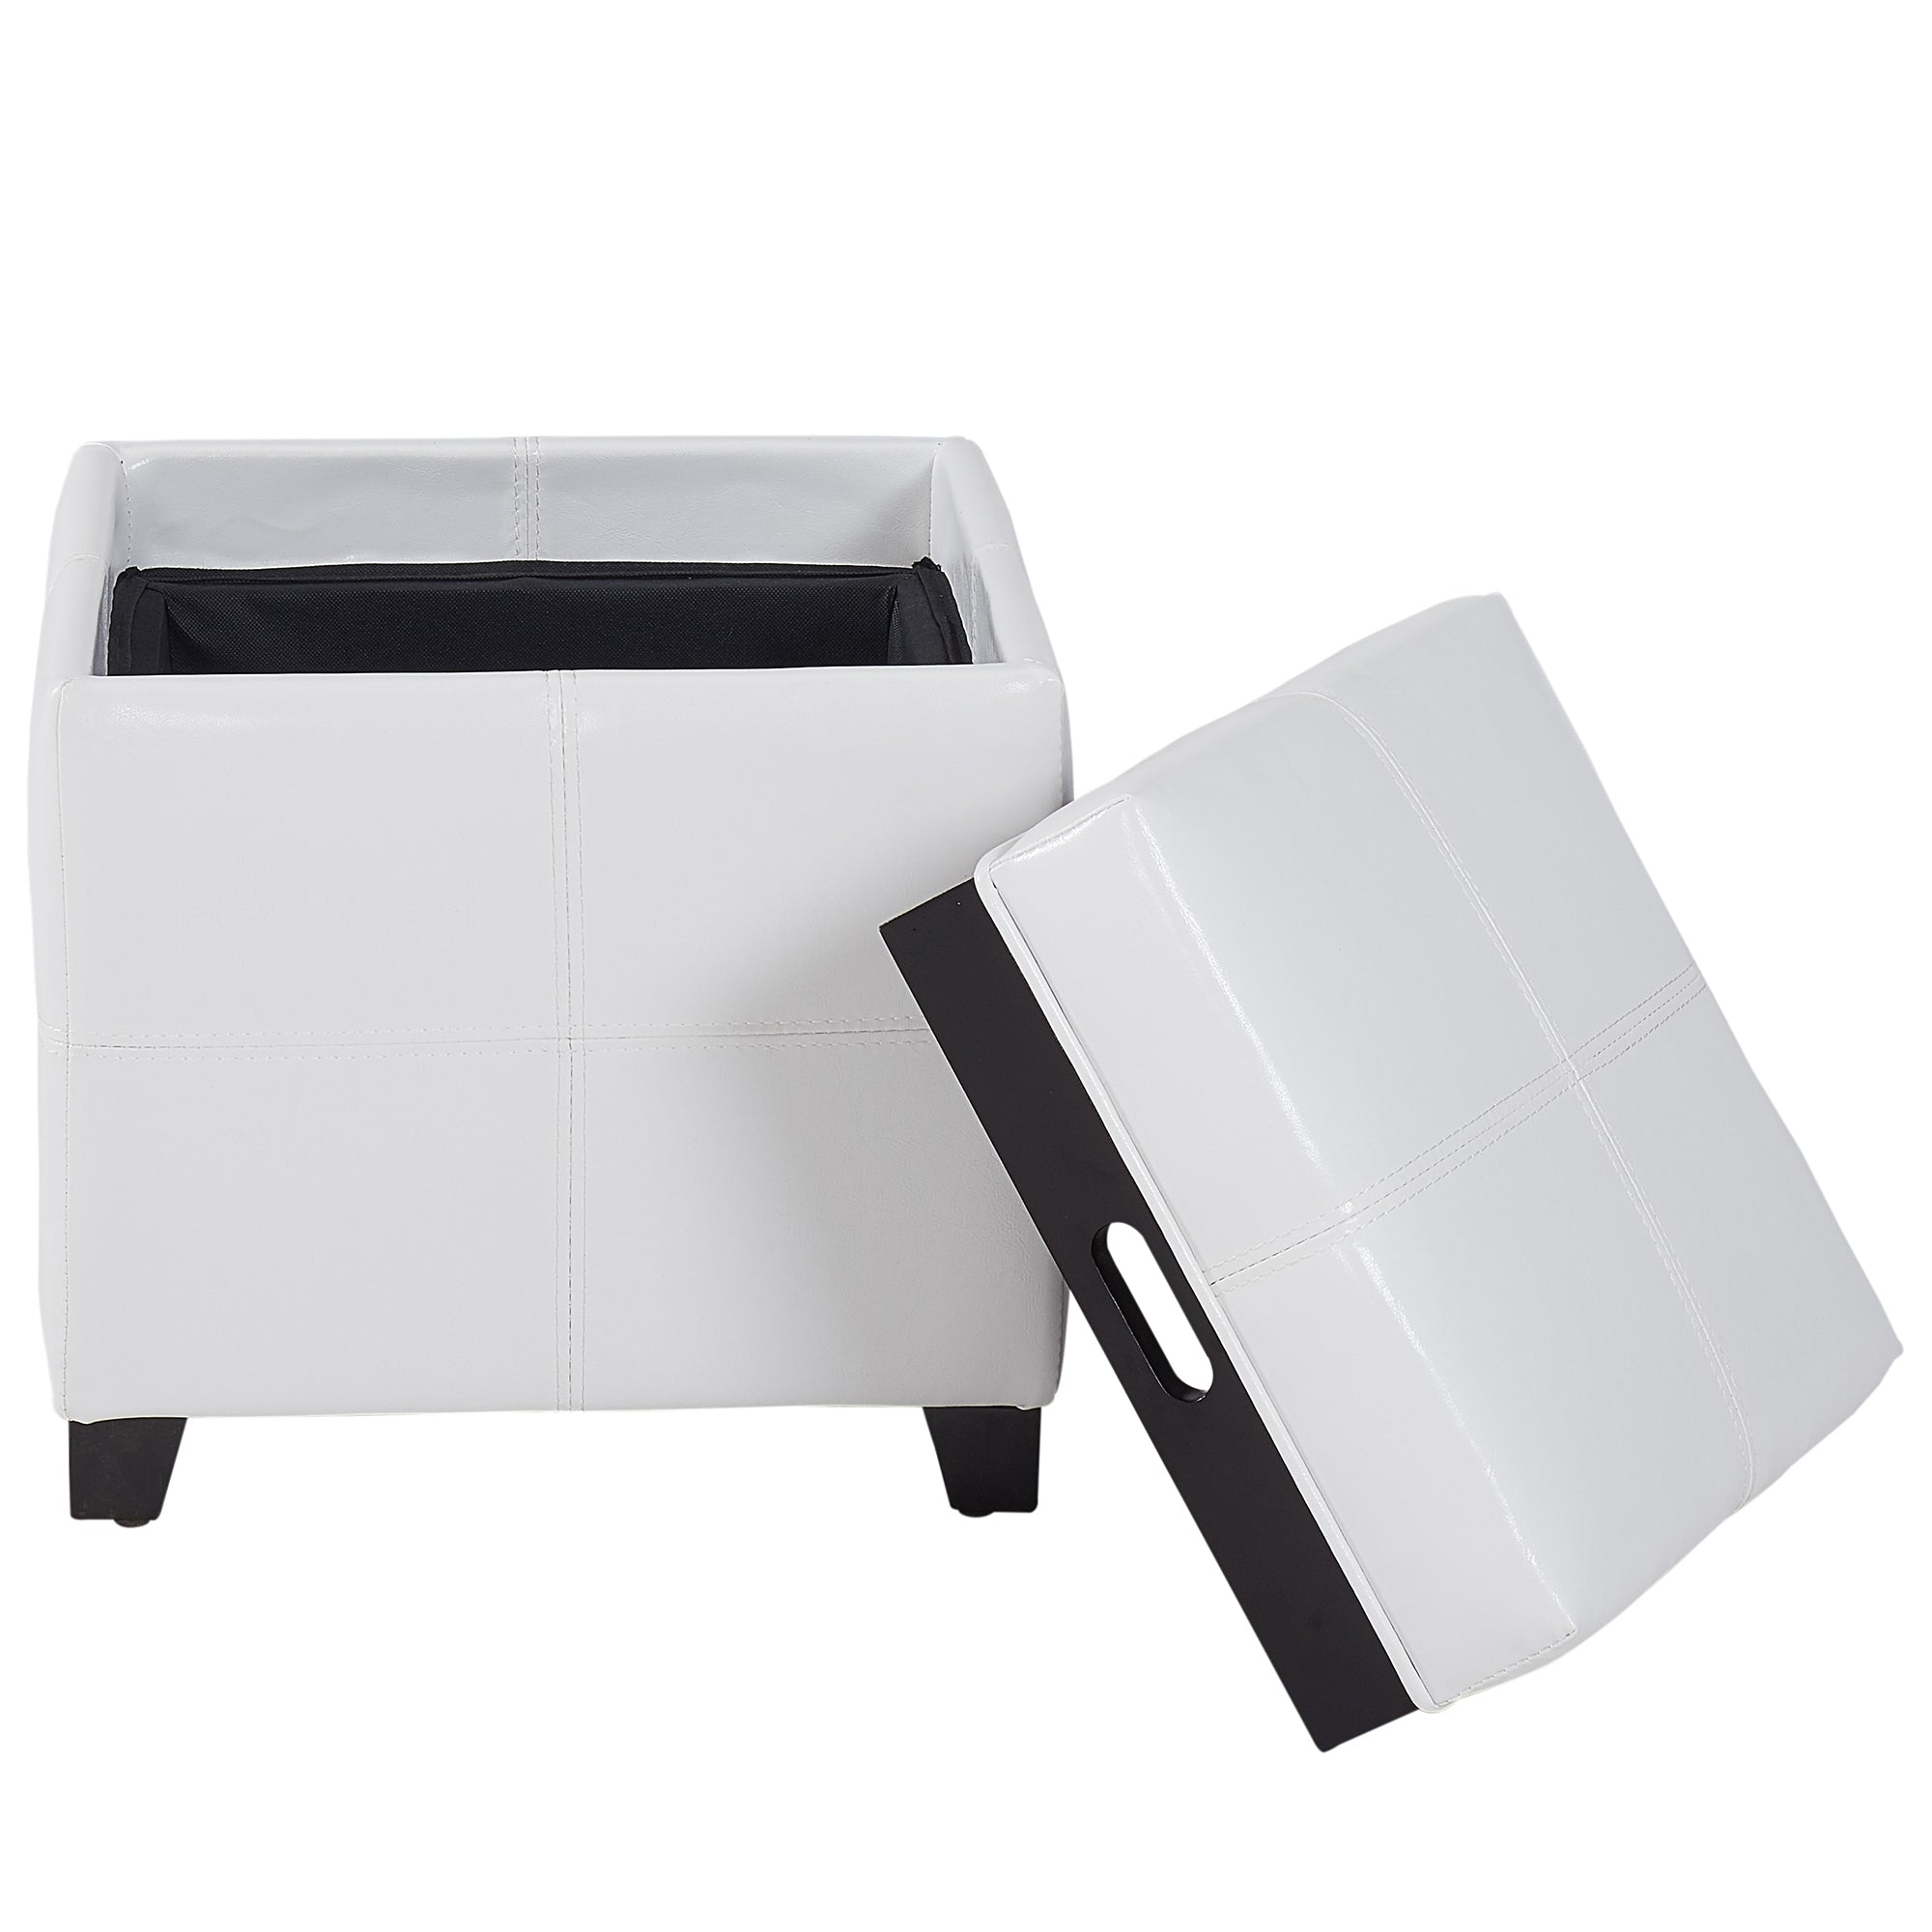 Miraculous Anton Ii Storage Ottoman With Serving Tray In White Gmtry Best Dining Table And Chair Ideas Images Gmtryco